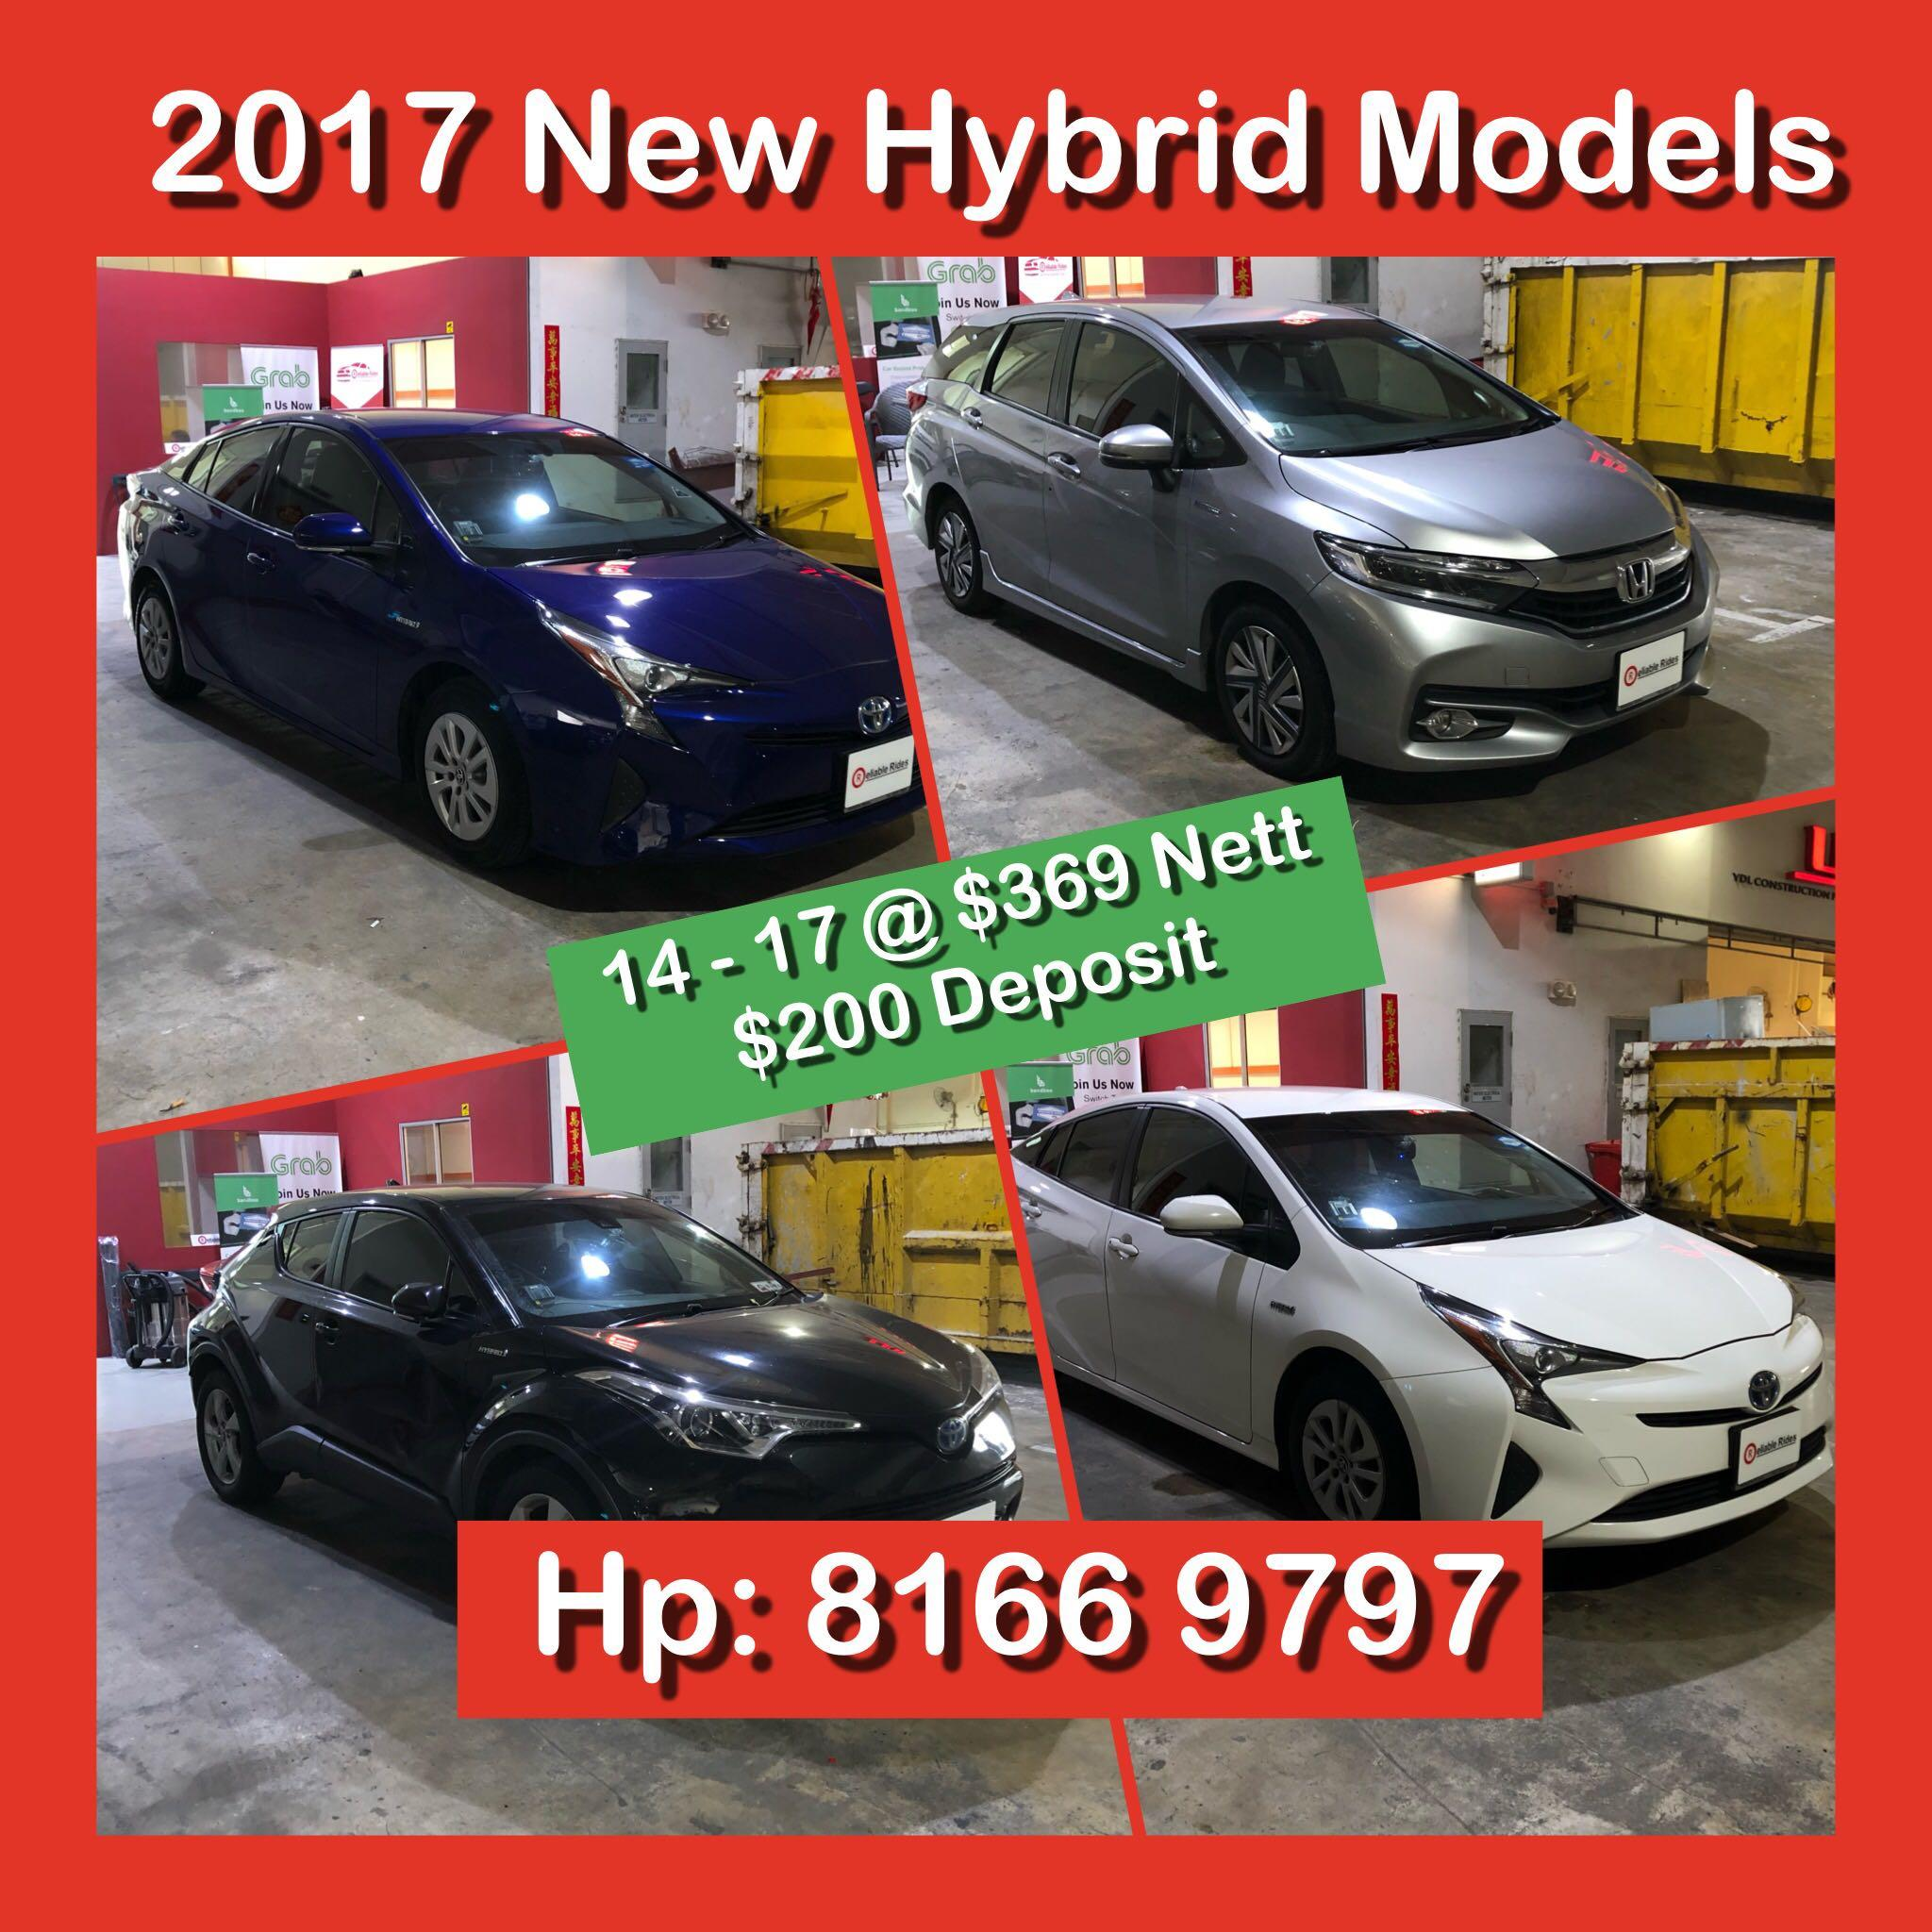 Hari Raya Holiday Car Rental - 2017 / 2018 Models